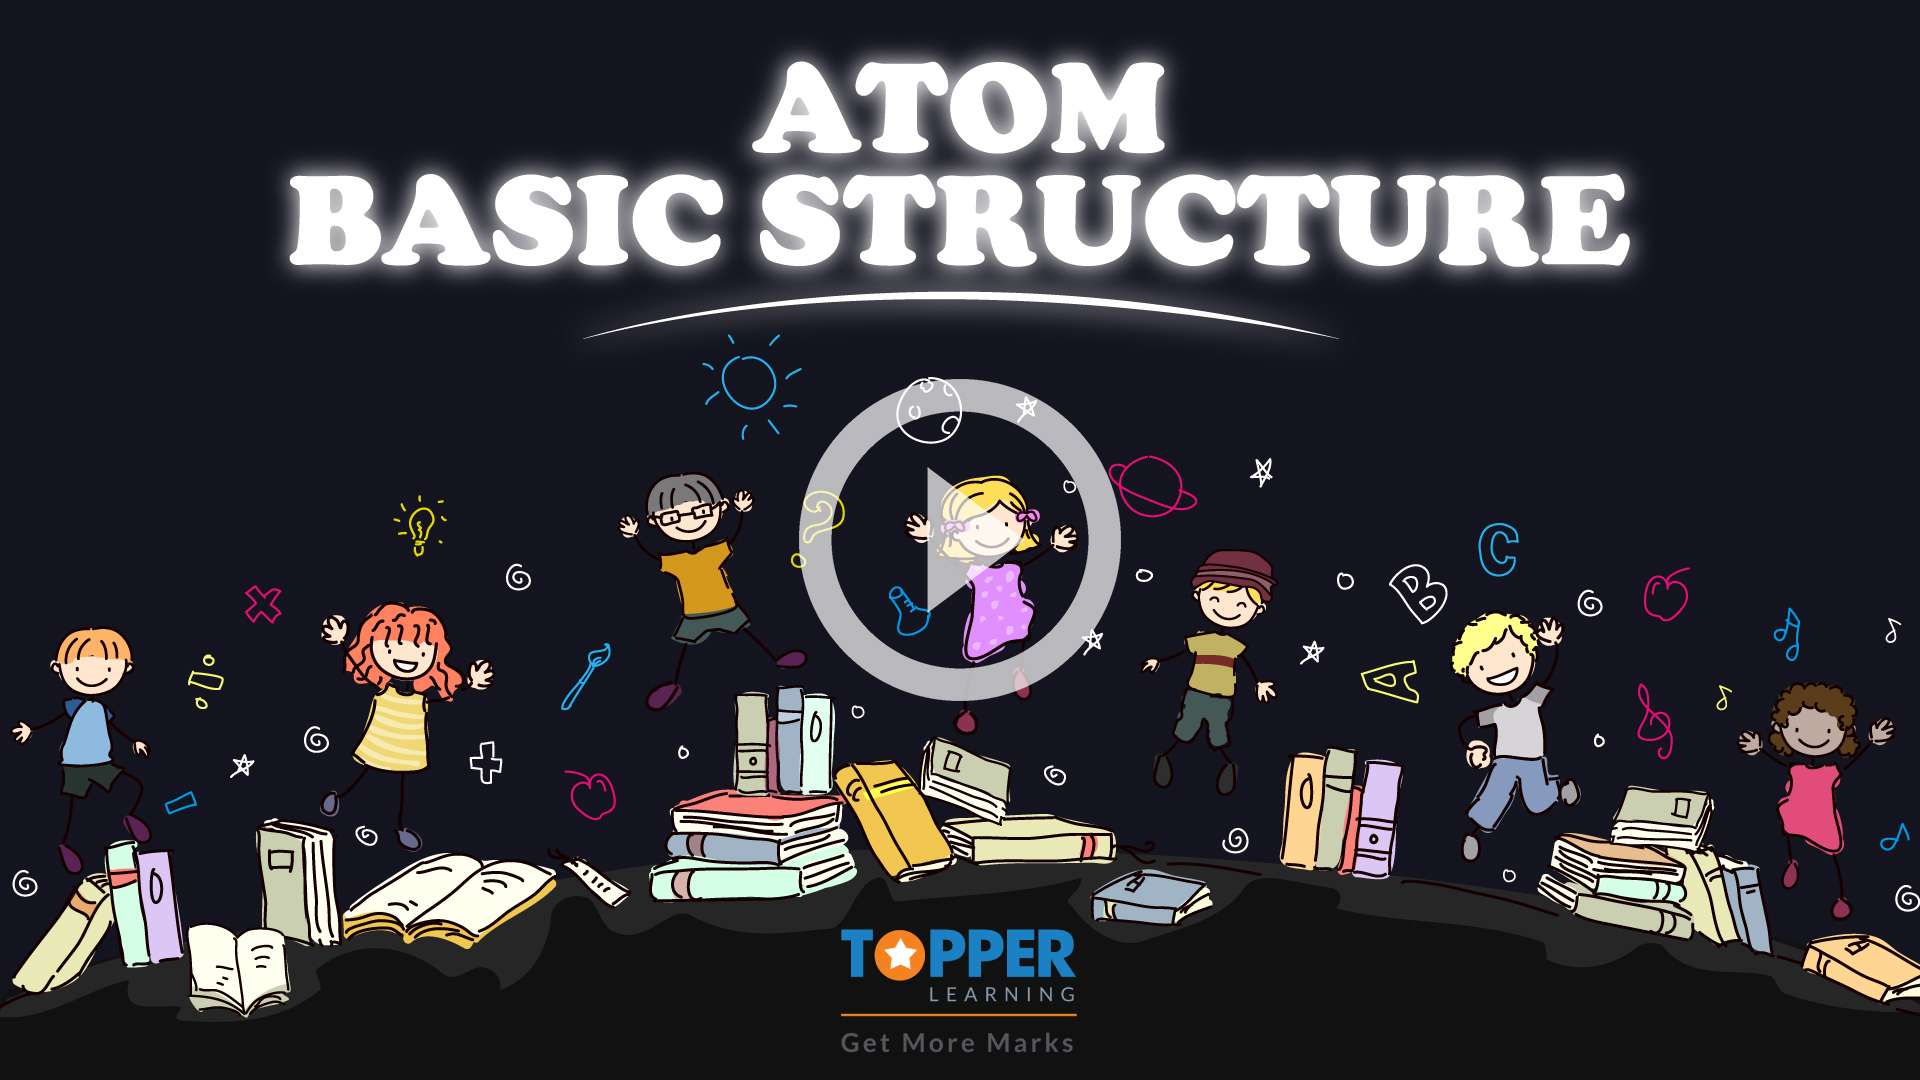 Atomic Structure - Atoms, Molecules and Radicals